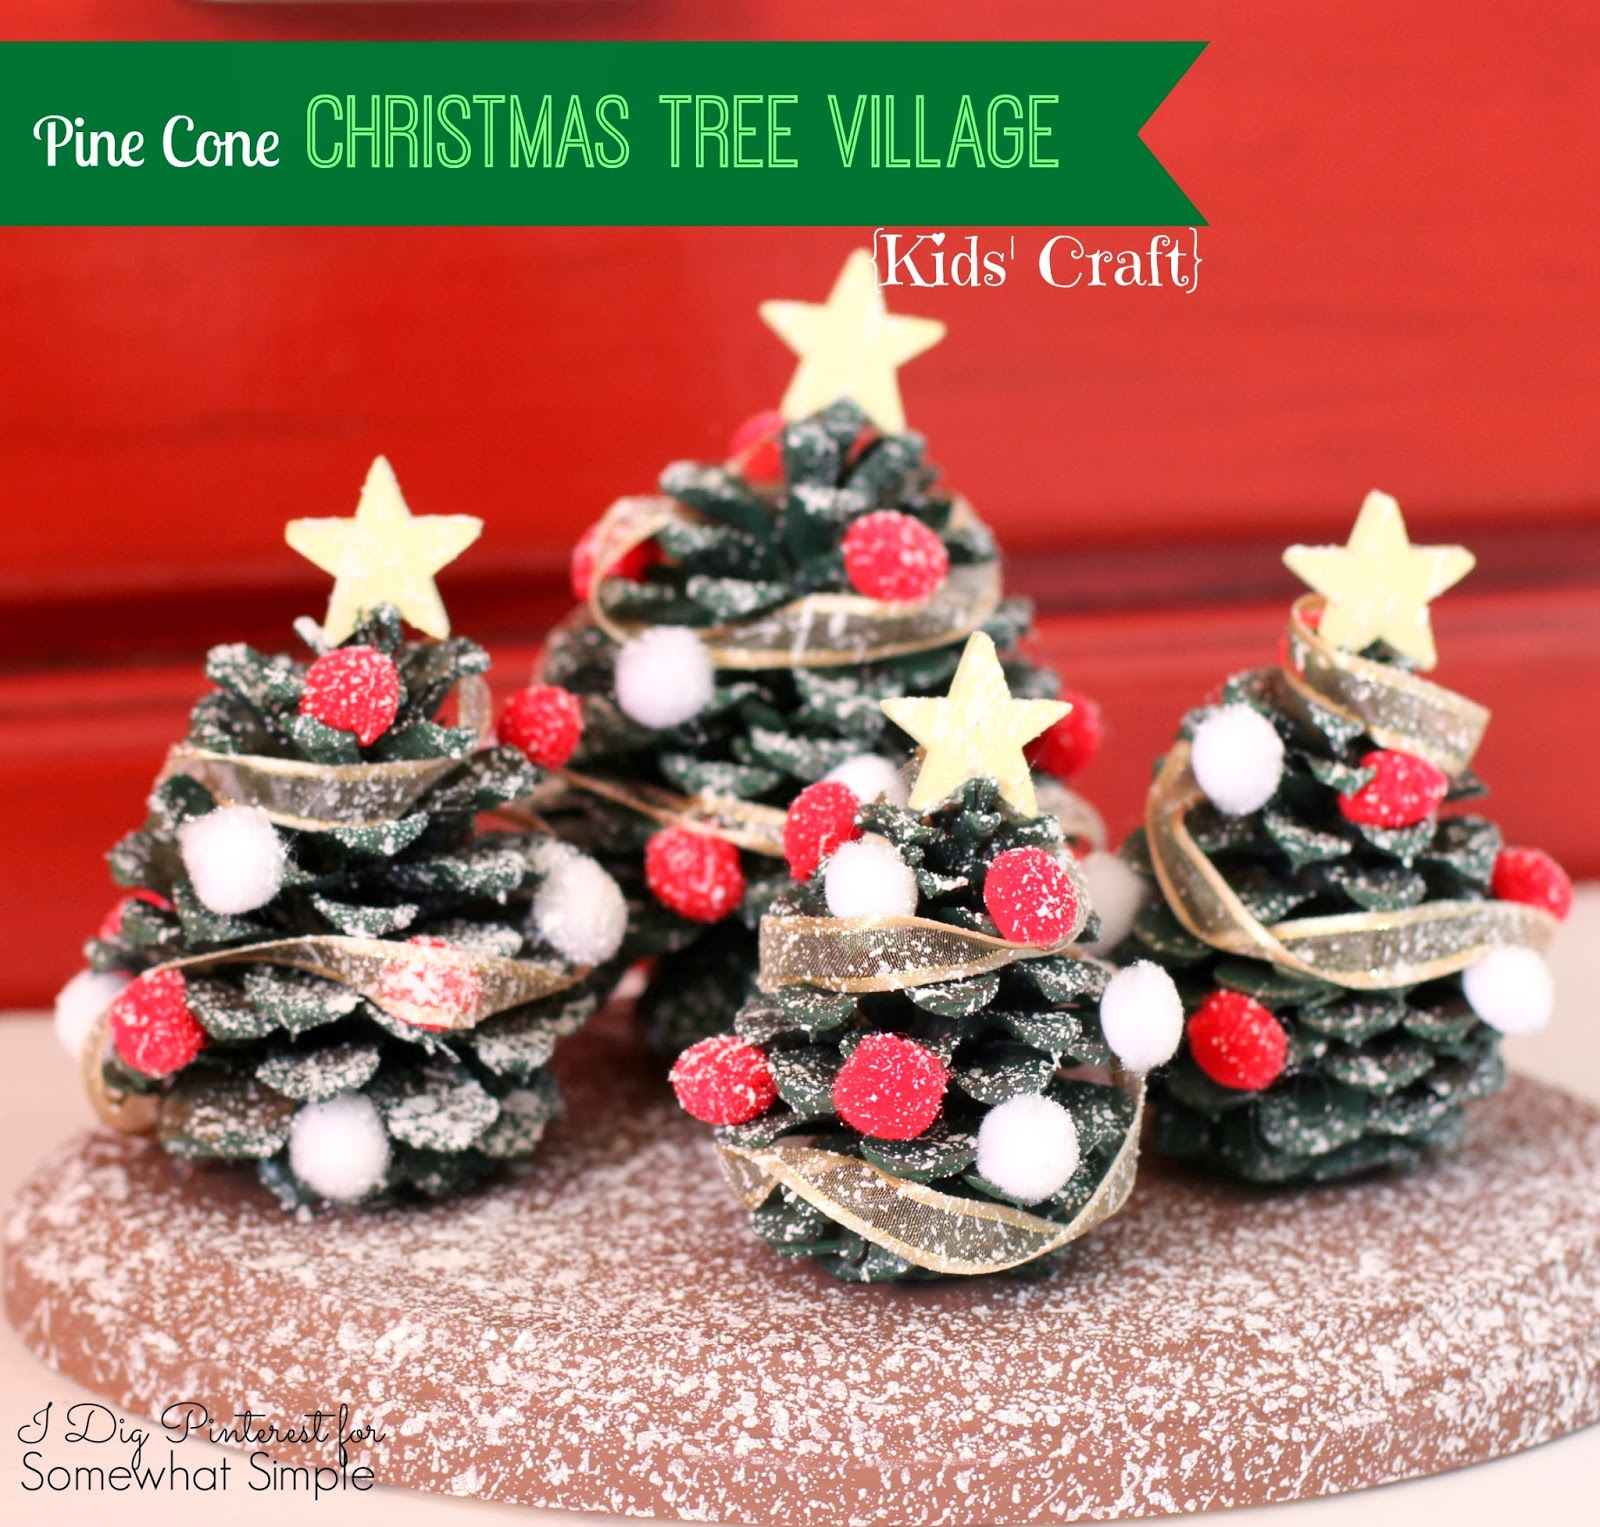 kids craft pine cone christmas tree village decoration - How To Decorate Pine Cones For Christmas Ornaments